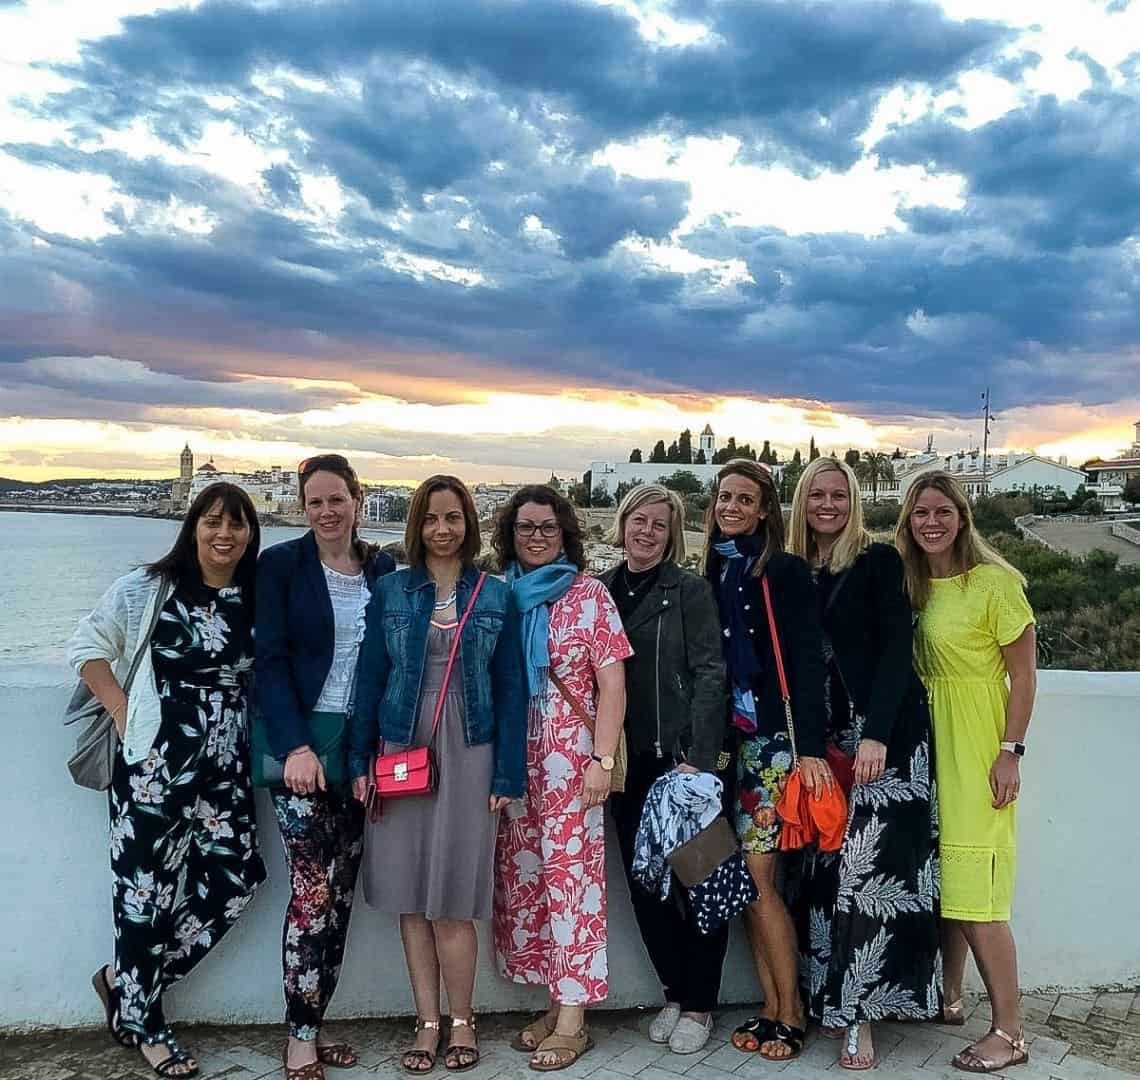 There are eight ladies stood in front of a white wall. We are all dressed for dinner adn wearingg flat shoes for walking around beforehand. Behind is there are clouds in teh sky that are dark from the coming night. The sky on the horizon is a watery pastel pink and orange.